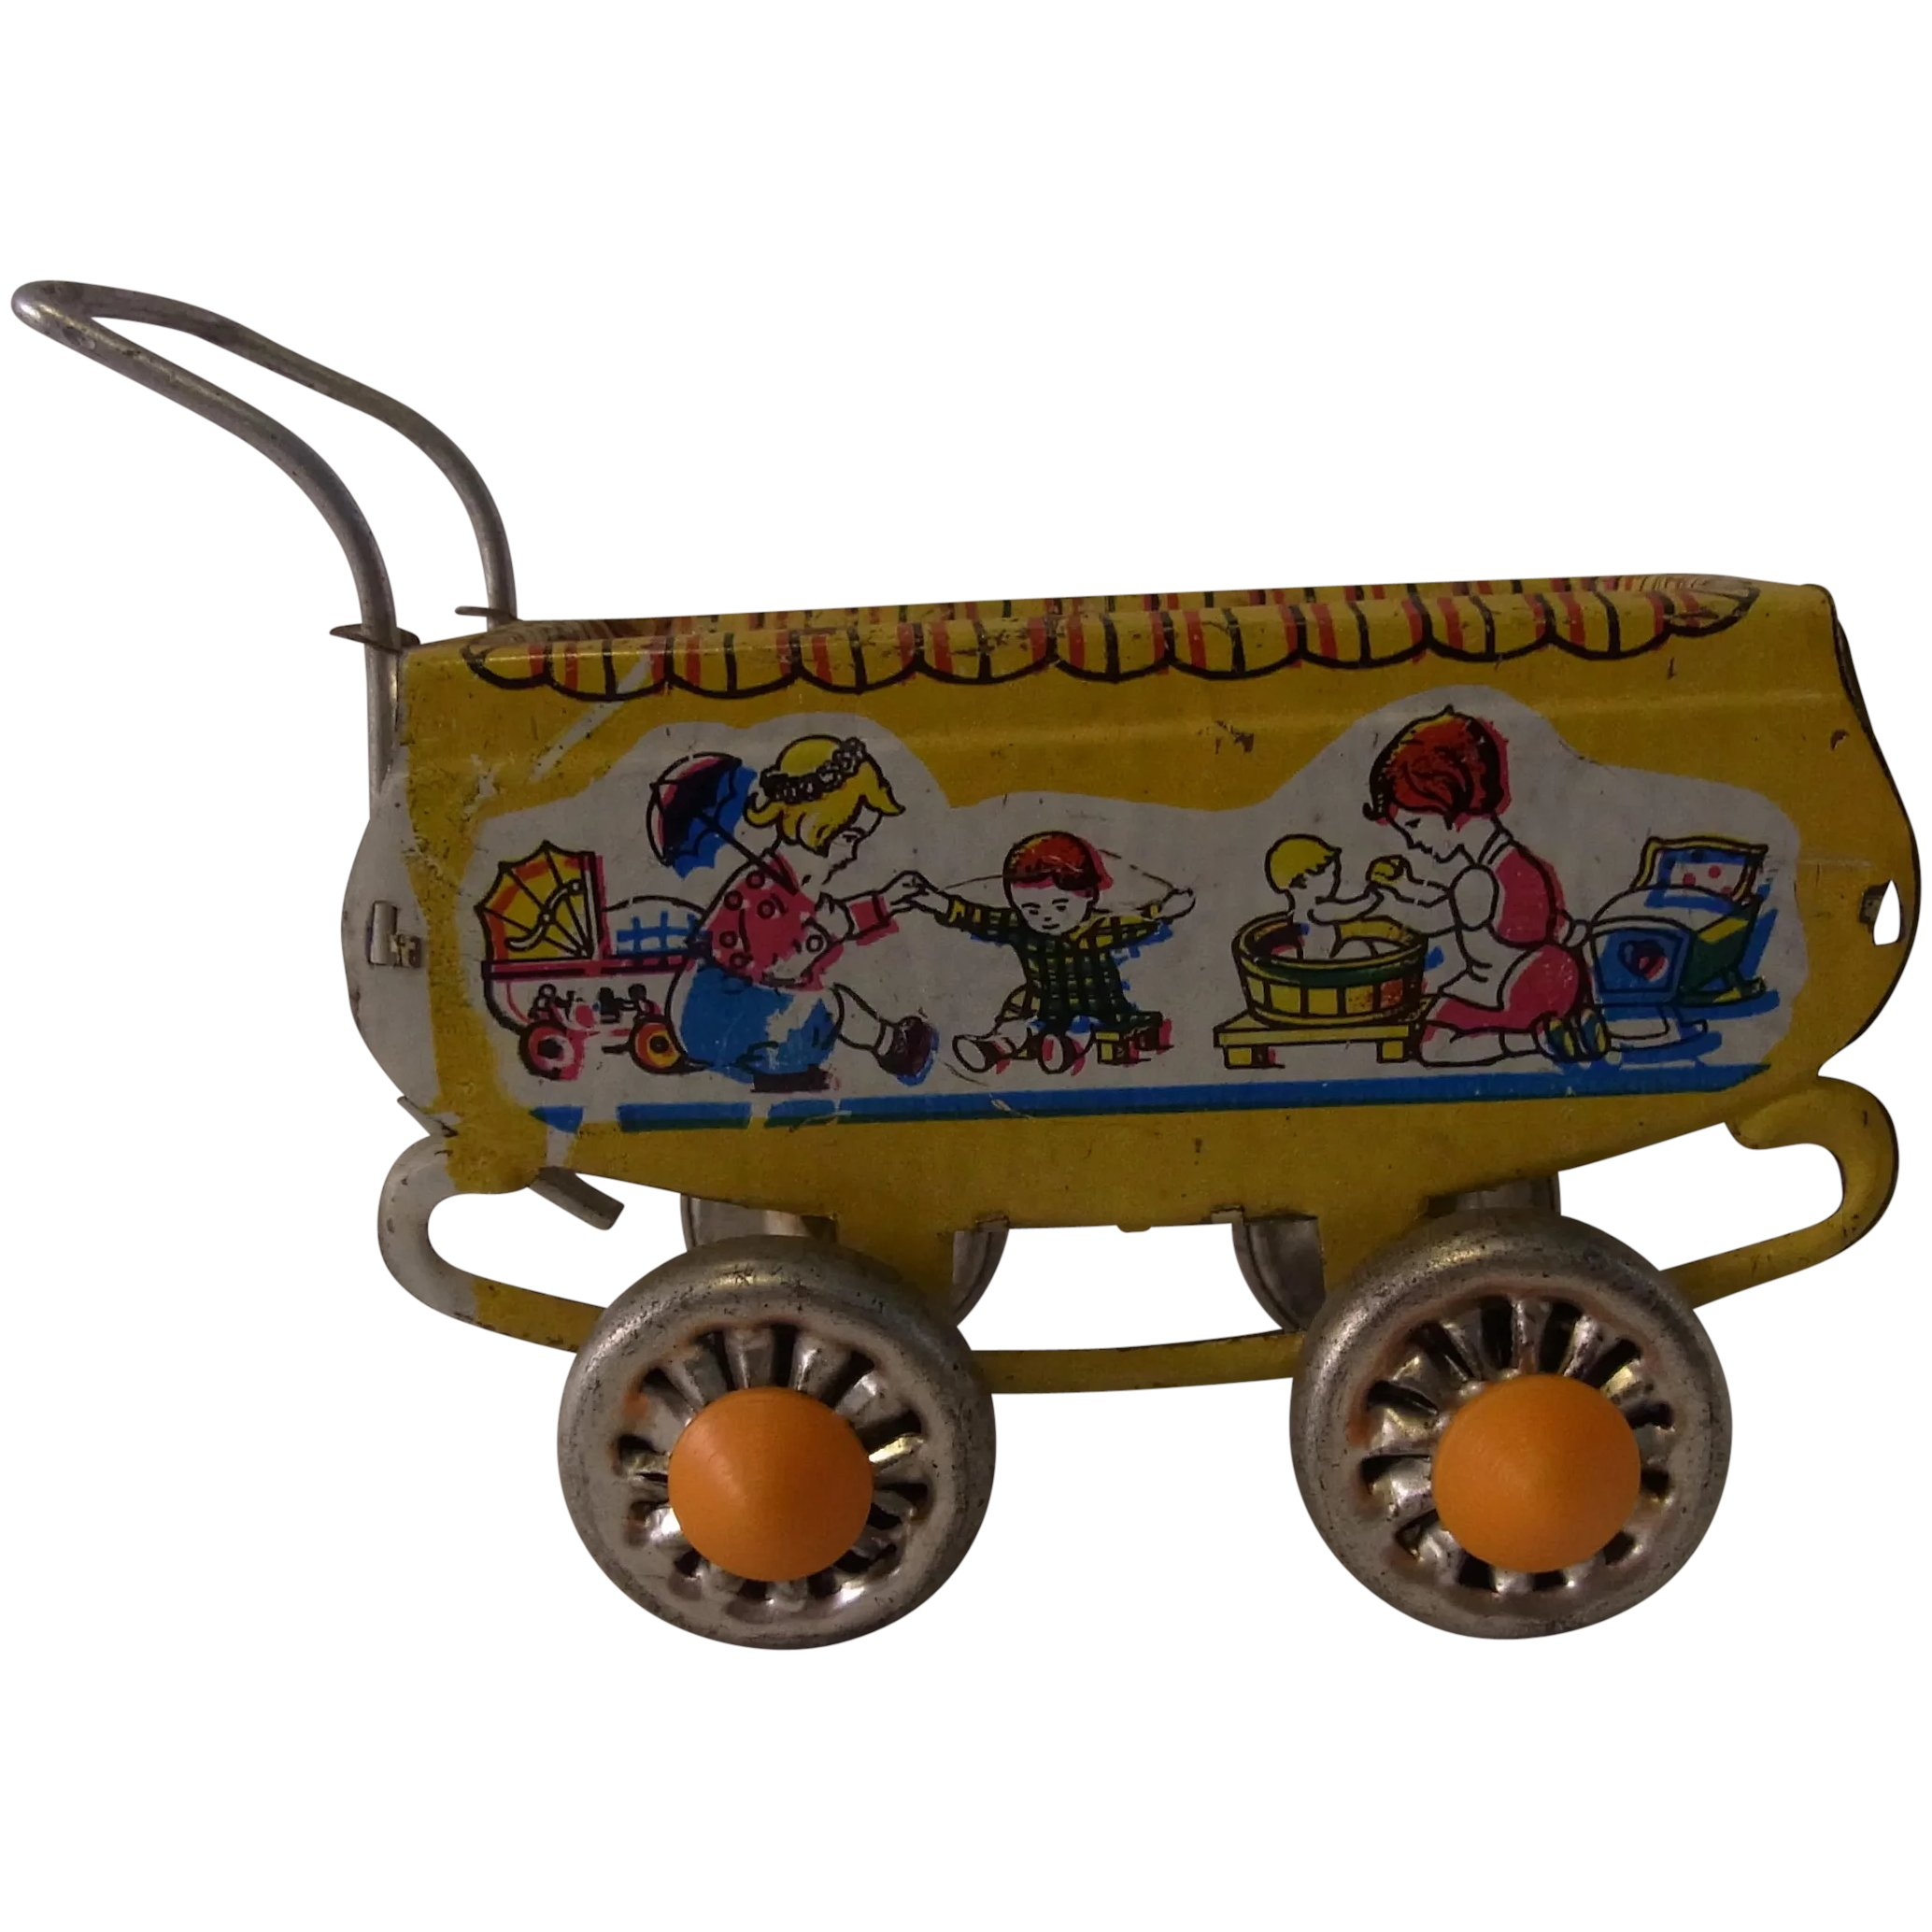 Vintage Toy Stroller Small Vintage Doll Stroller Tin Toy